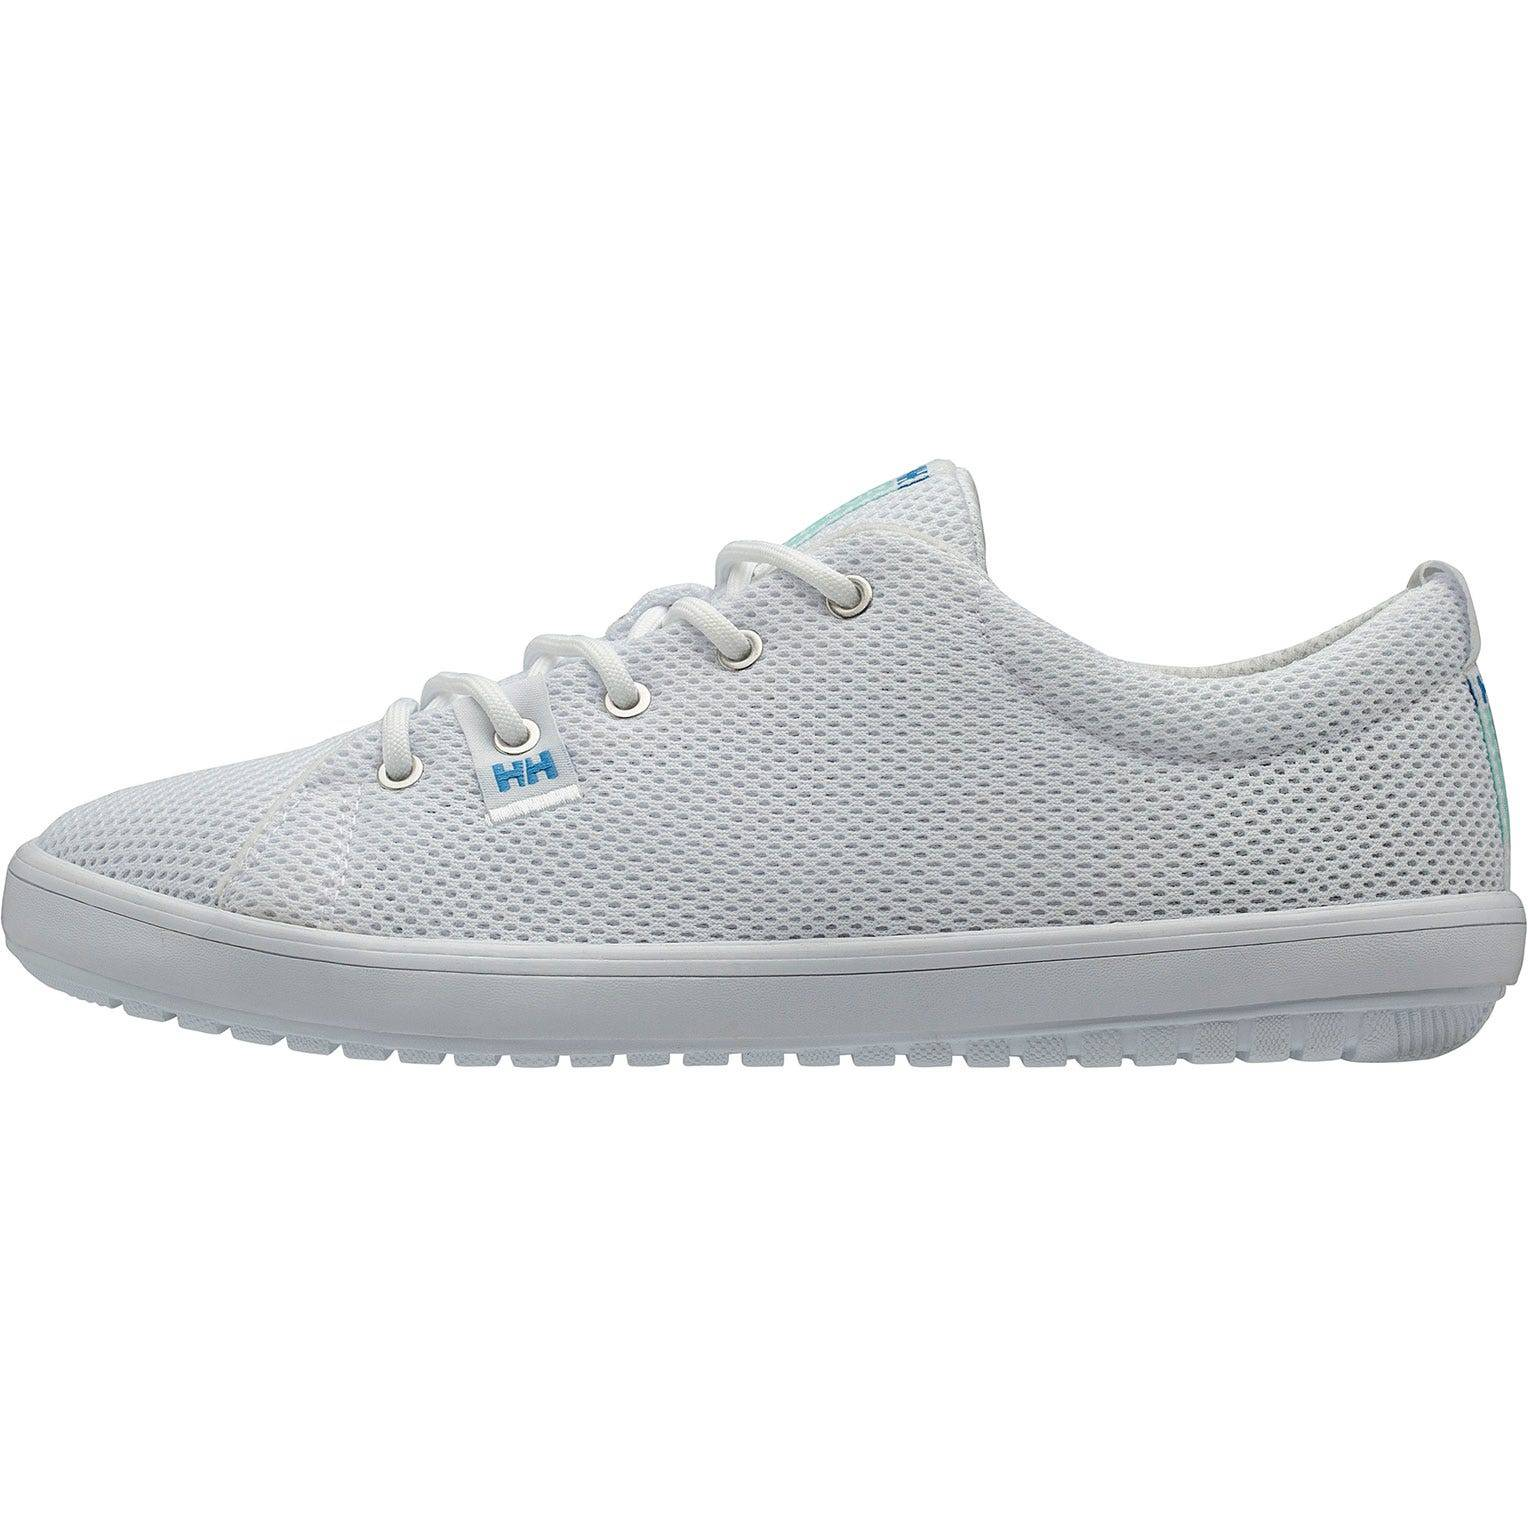 Helly Hansen W Scurry 2 Womens Casual Shoe White 40/8.5